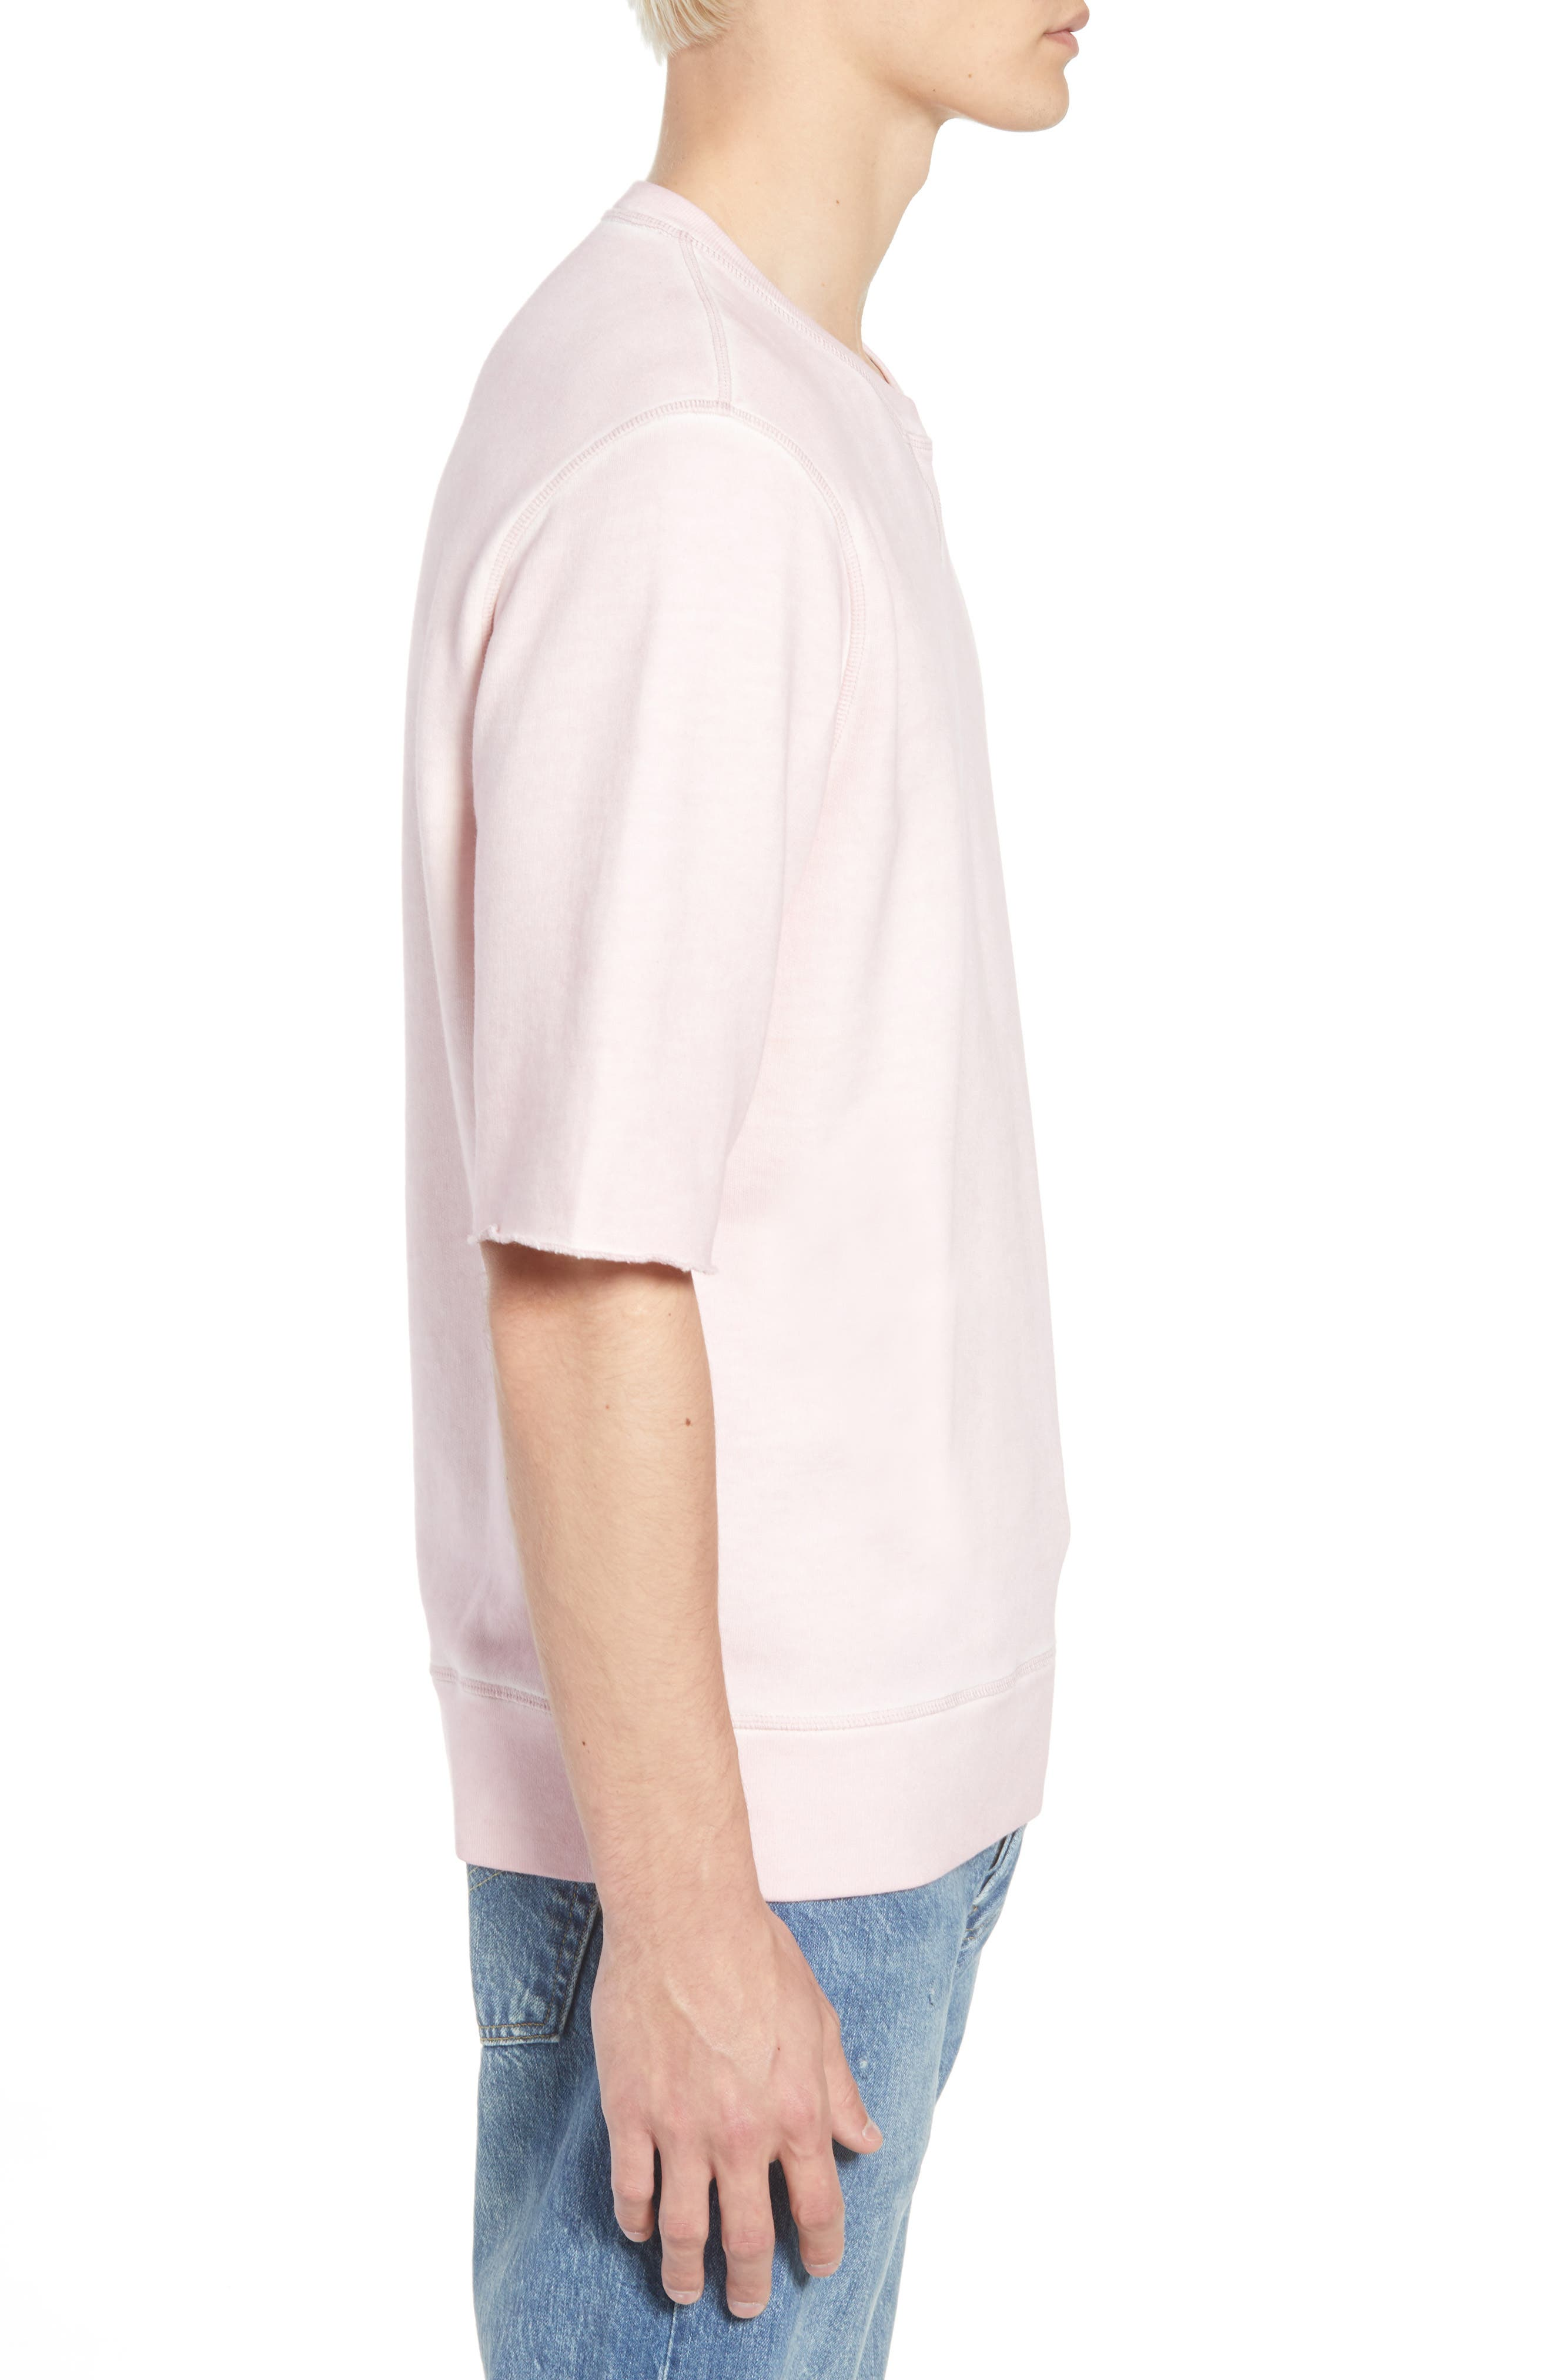 Levis'<sup>®</sup> Made & Crafted<sup>™</sup> Standard Fit T-Shirt,                             Alternate thumbnail 3, color,                             Keepsake Lilac